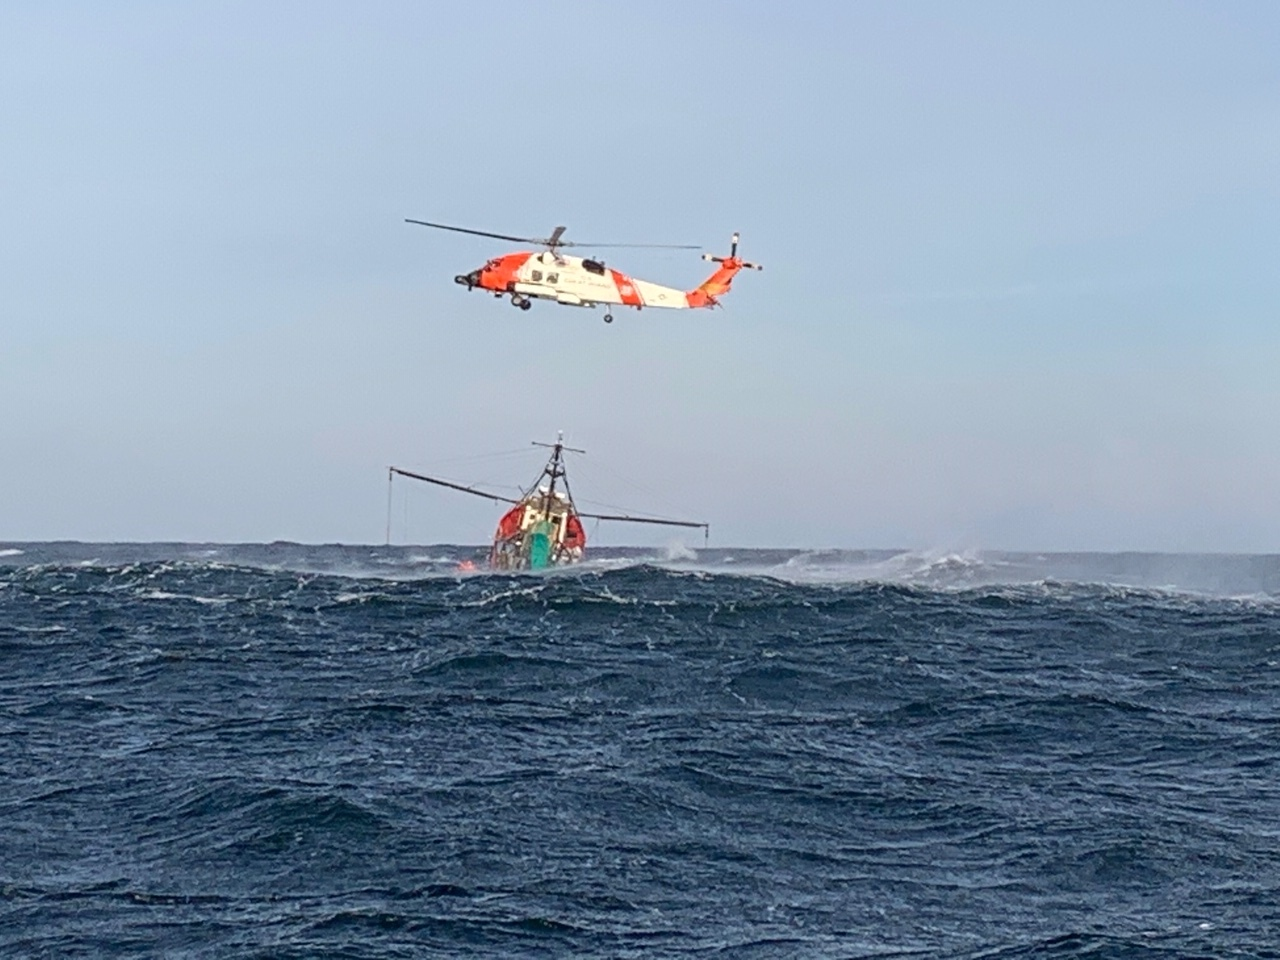 A United States Coast Guard helicopter comes to the aid of the New Age about 25 miles off Fire Island on February 12. COURTESY U.S. COAST GUARD